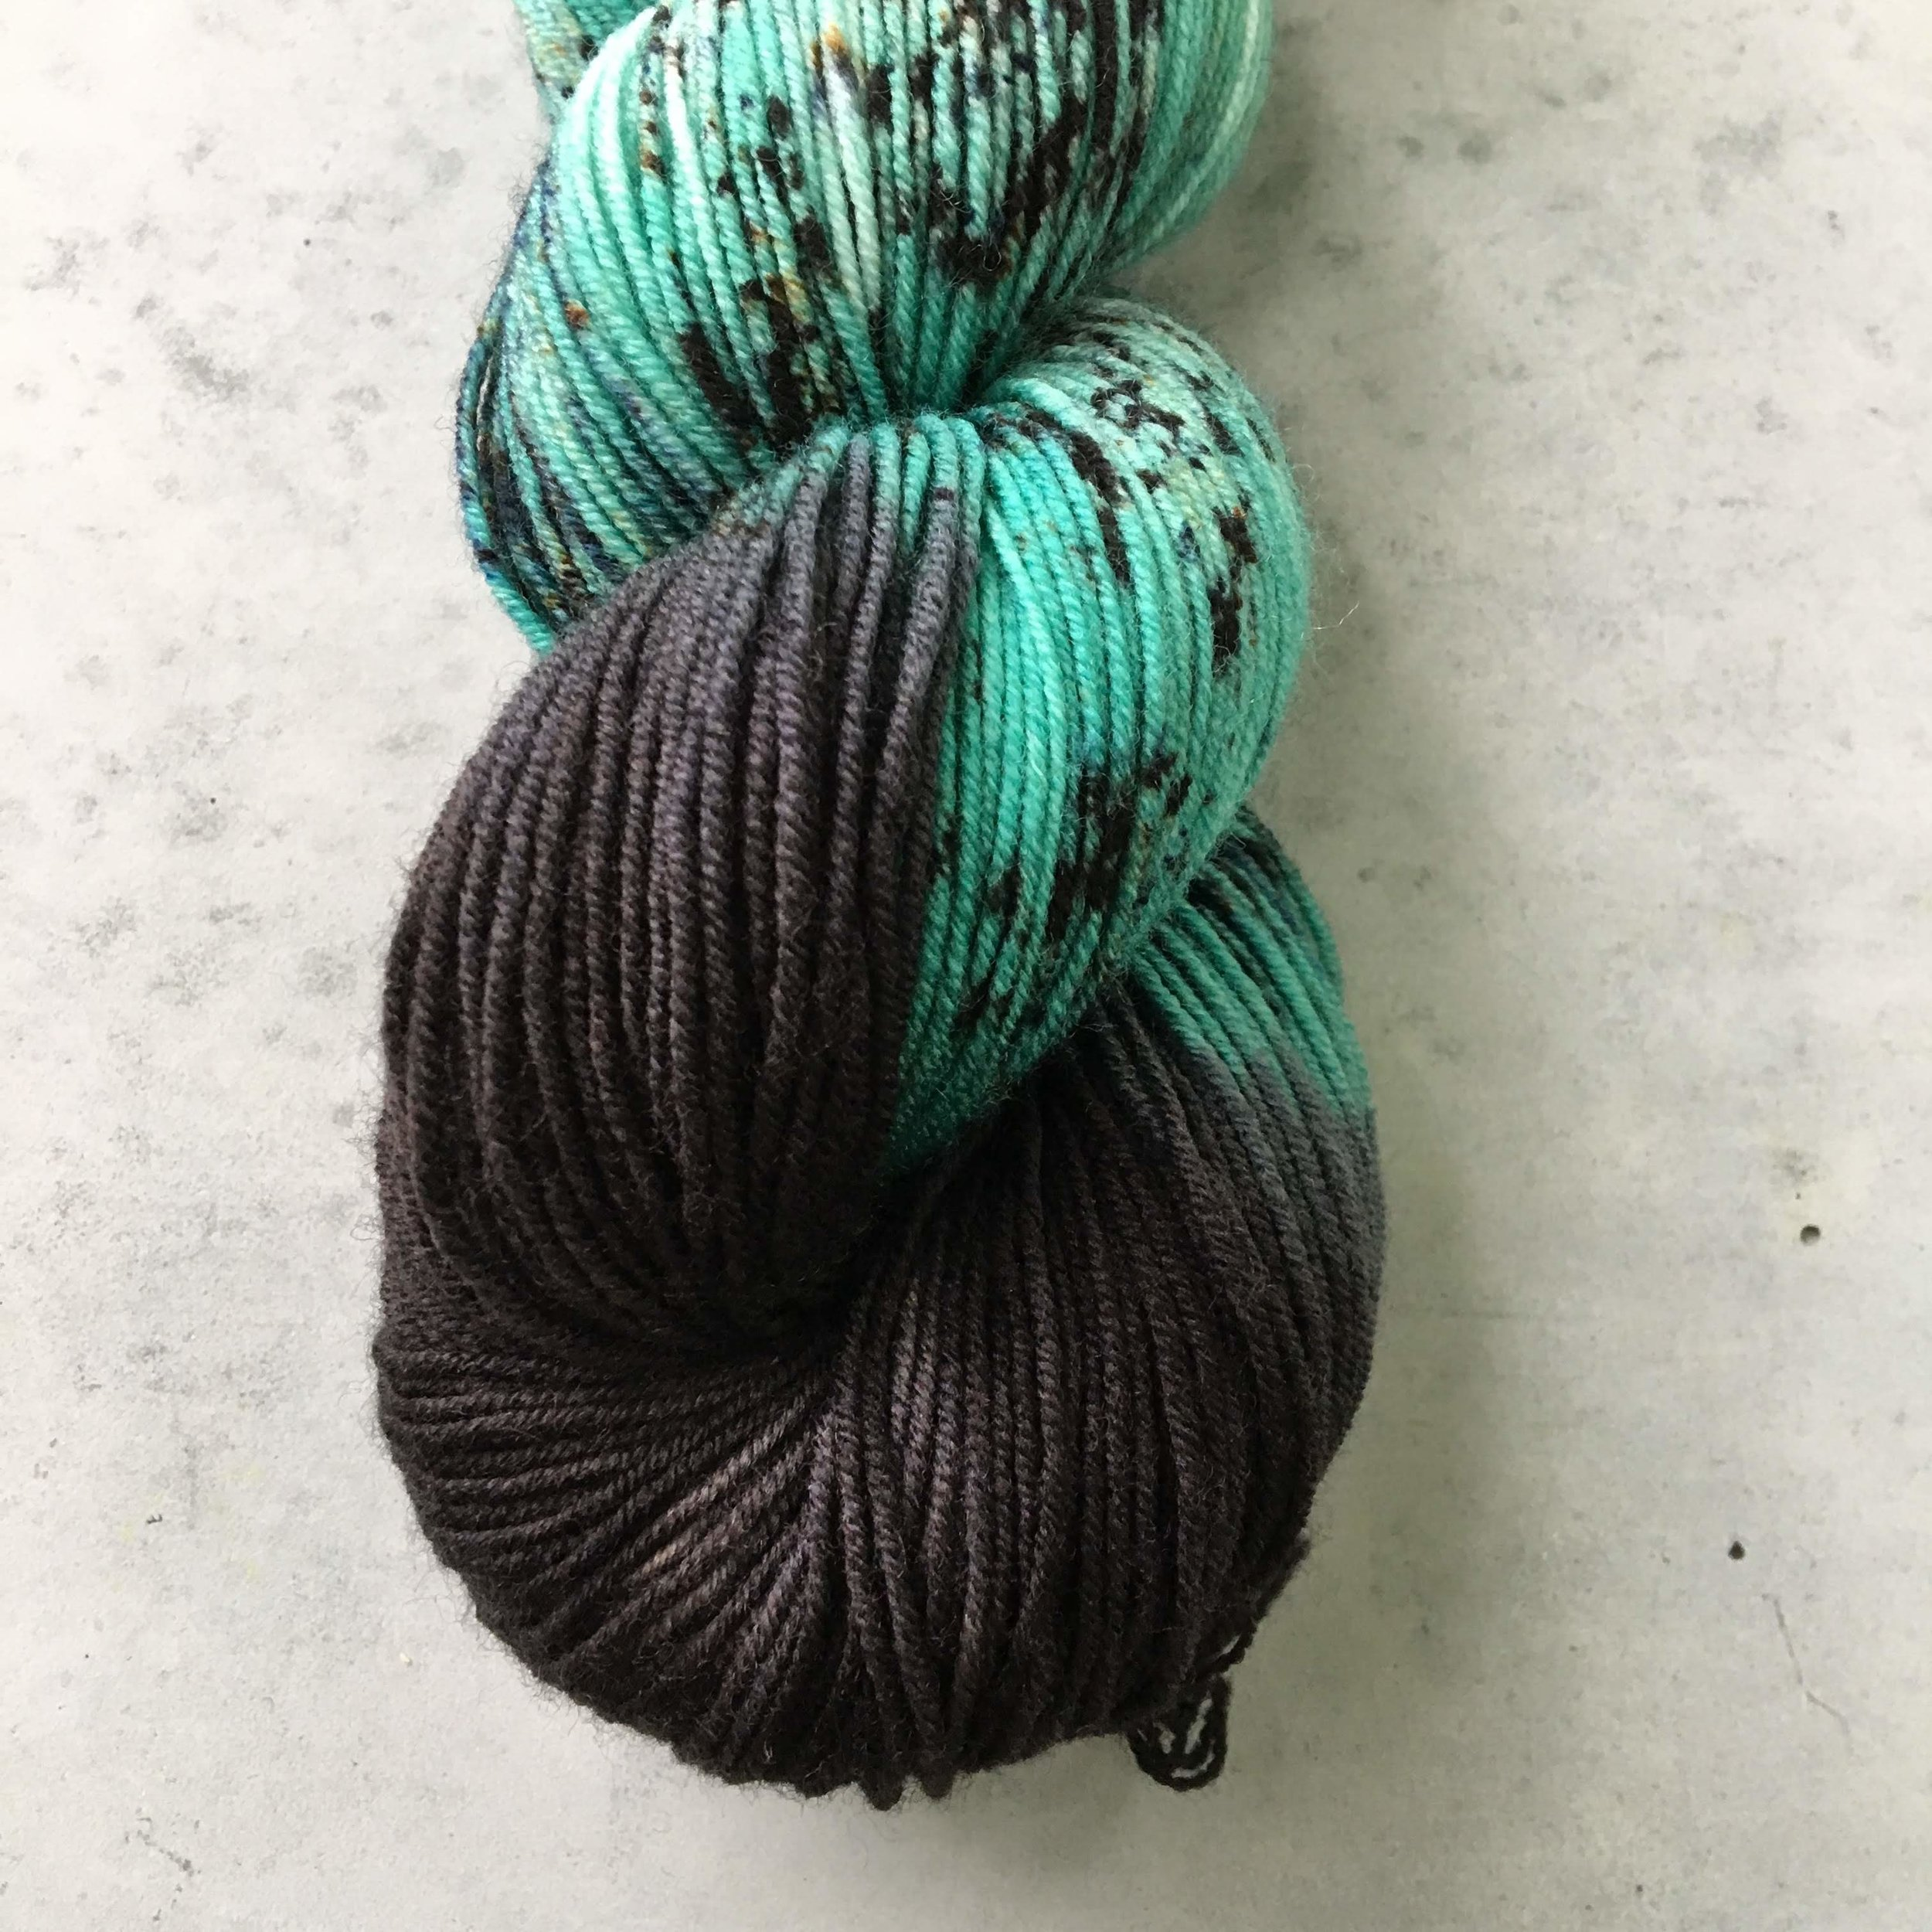 Our new base Alder Fingering in July's Aquatic Club colorway 'Nudibranch Cristada'.